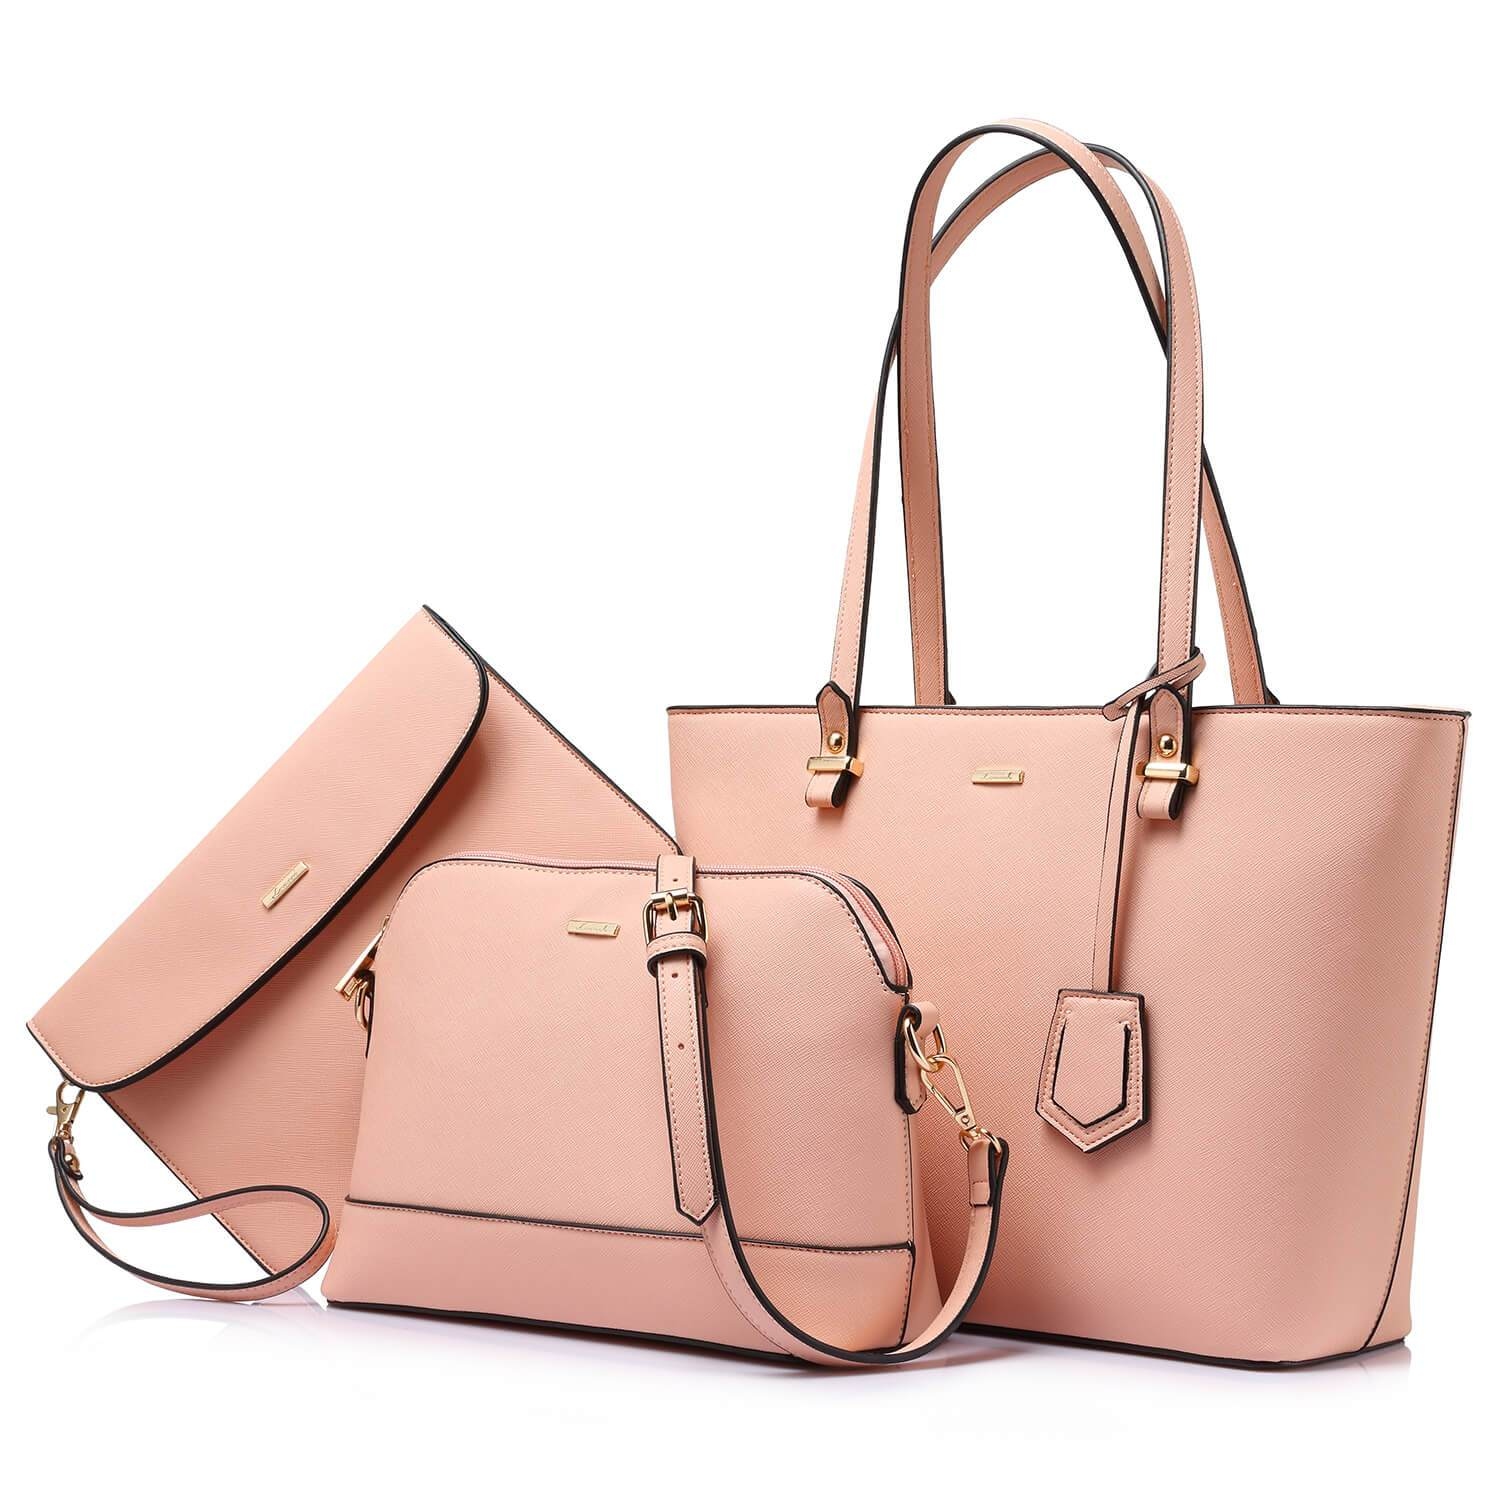 Lovevook-handbag-composite-bag-RHNWB0976-Pink-positive